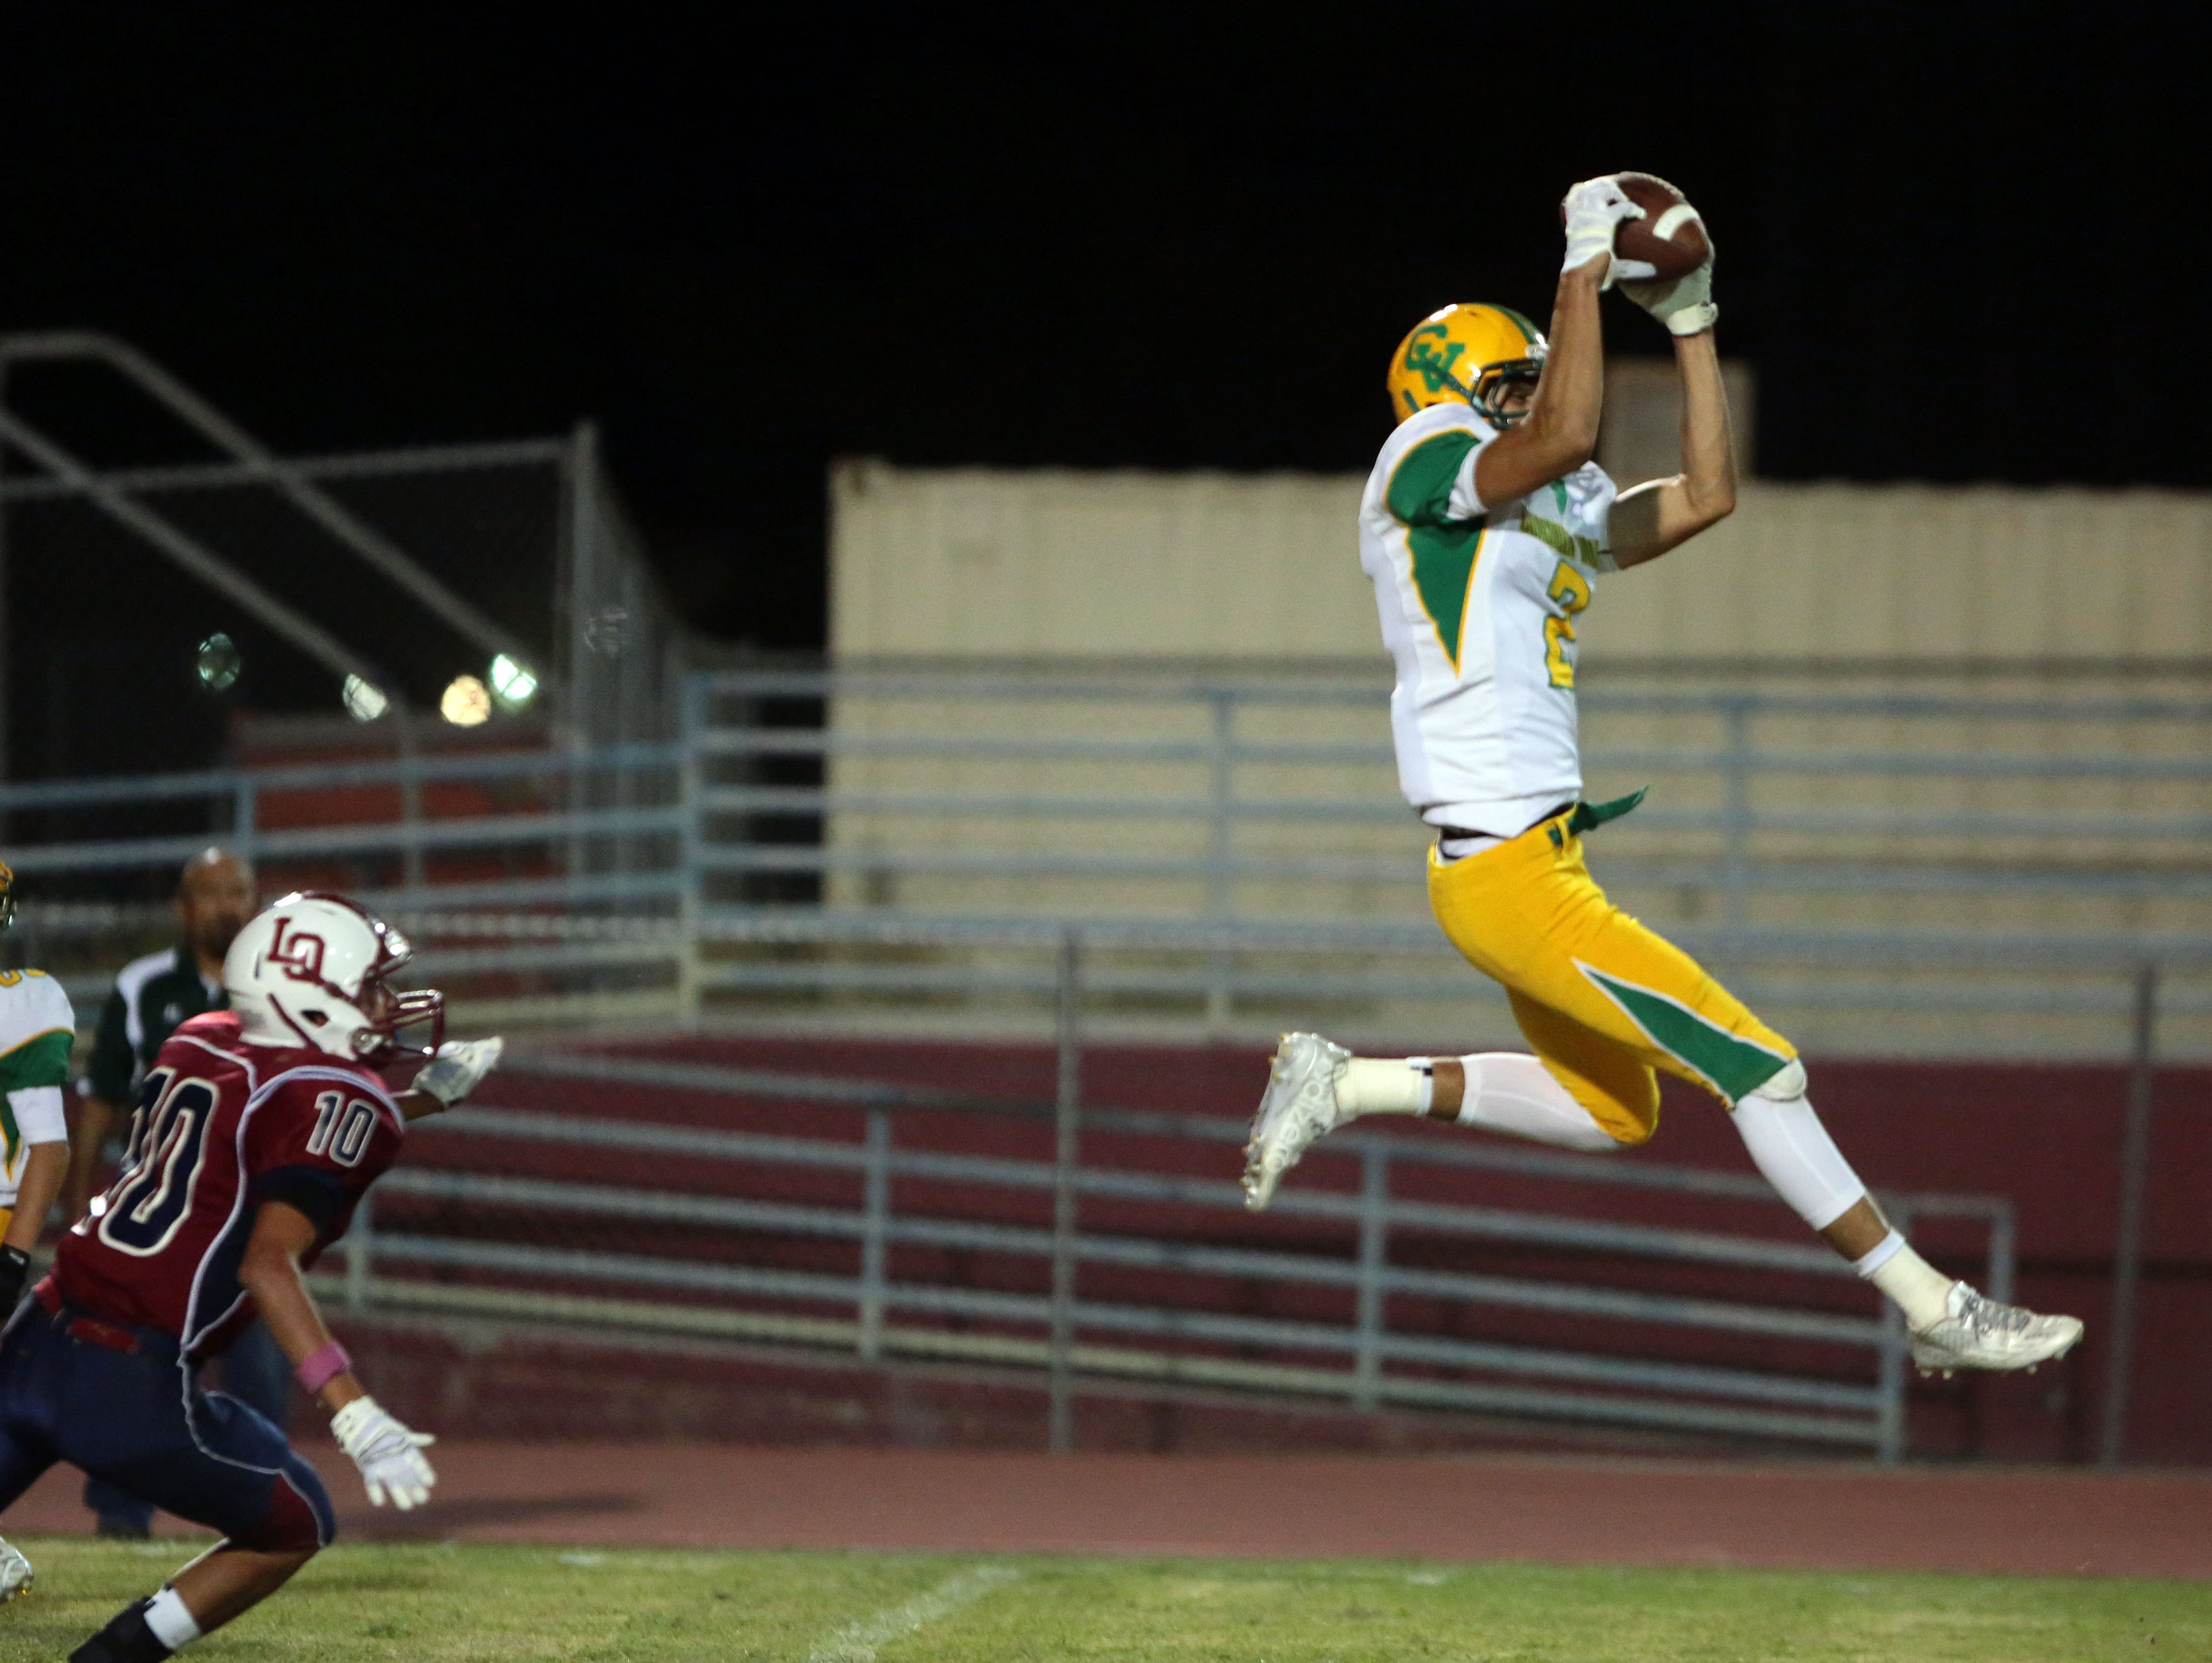 Coachella Valley's Marvin Martinez completes a pass fora first down against La Quinta in the first quarter on Friday in La Quinta.